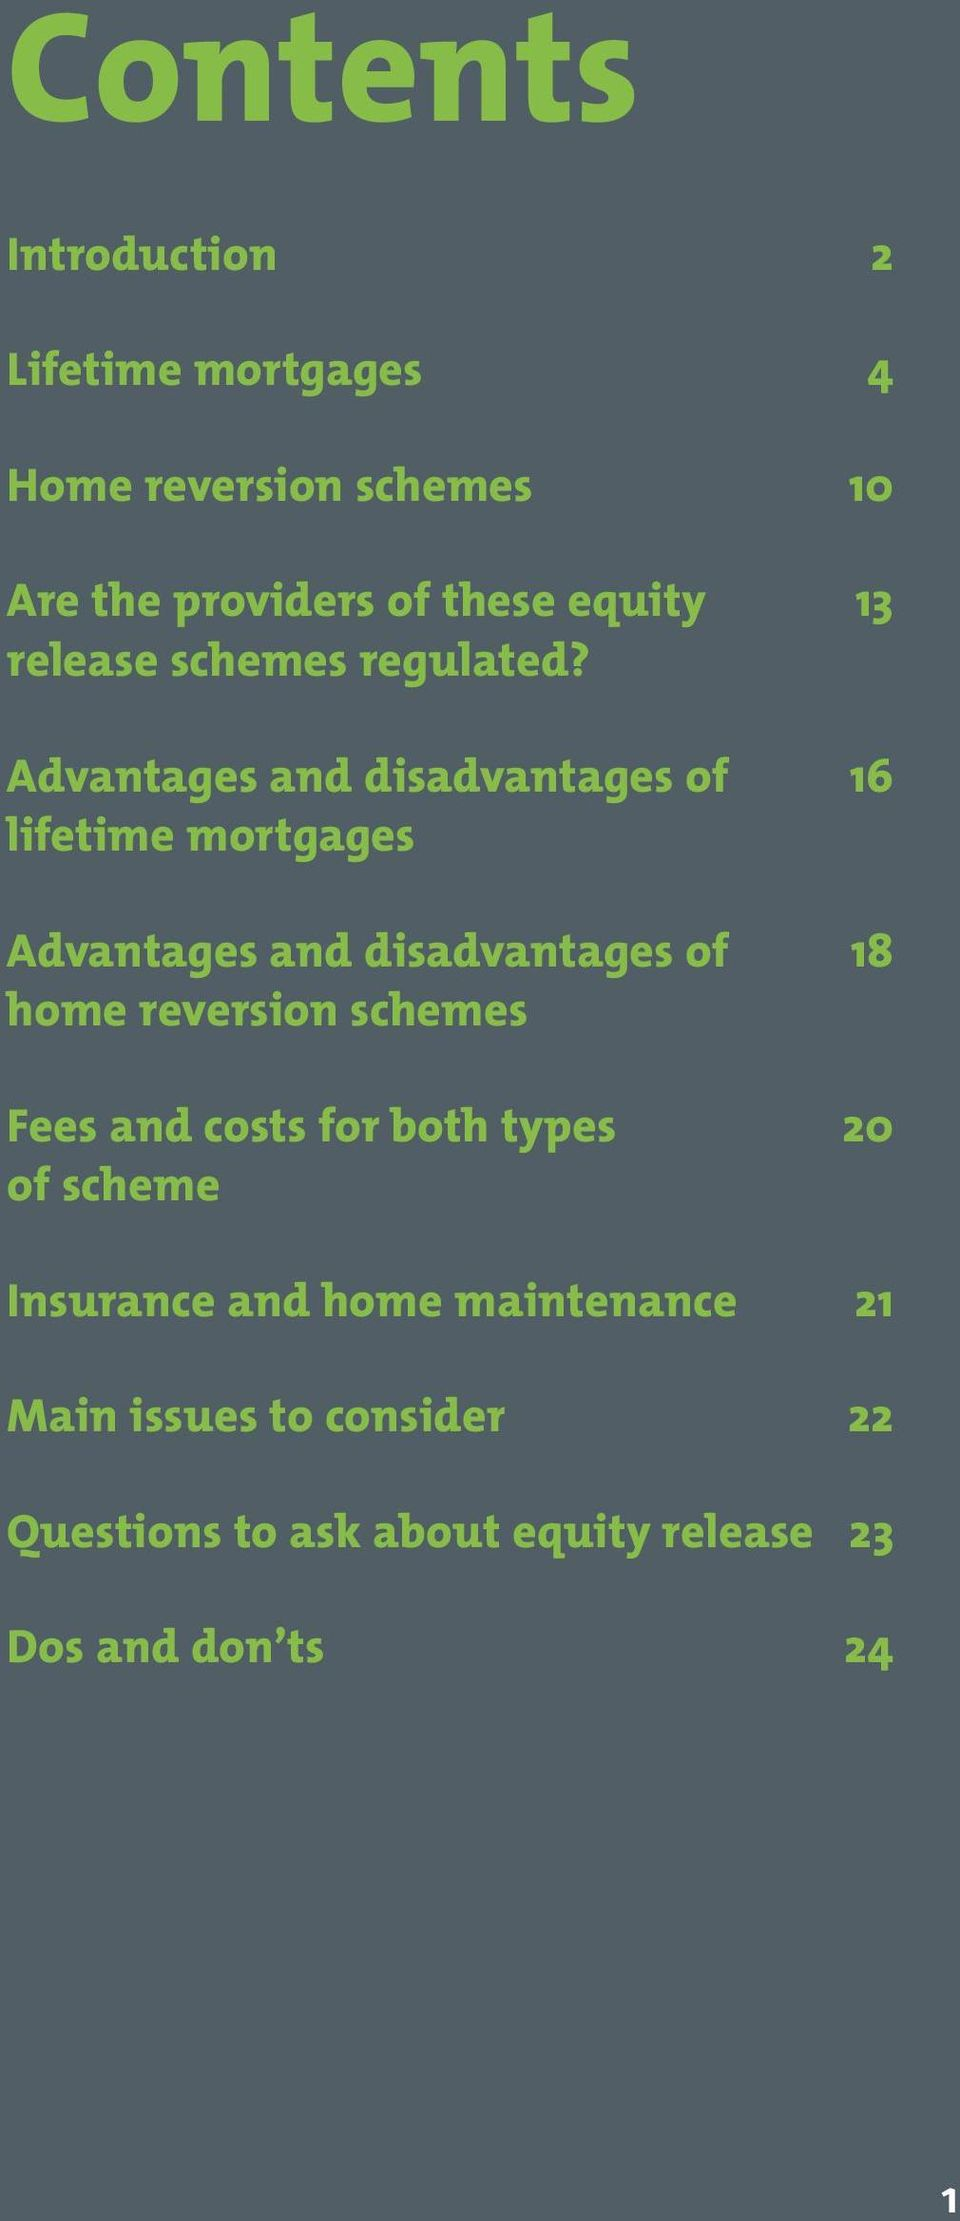 Advantages and disadvantages of 16 lifetime mortgages Advantages and disadvantages of 18 home